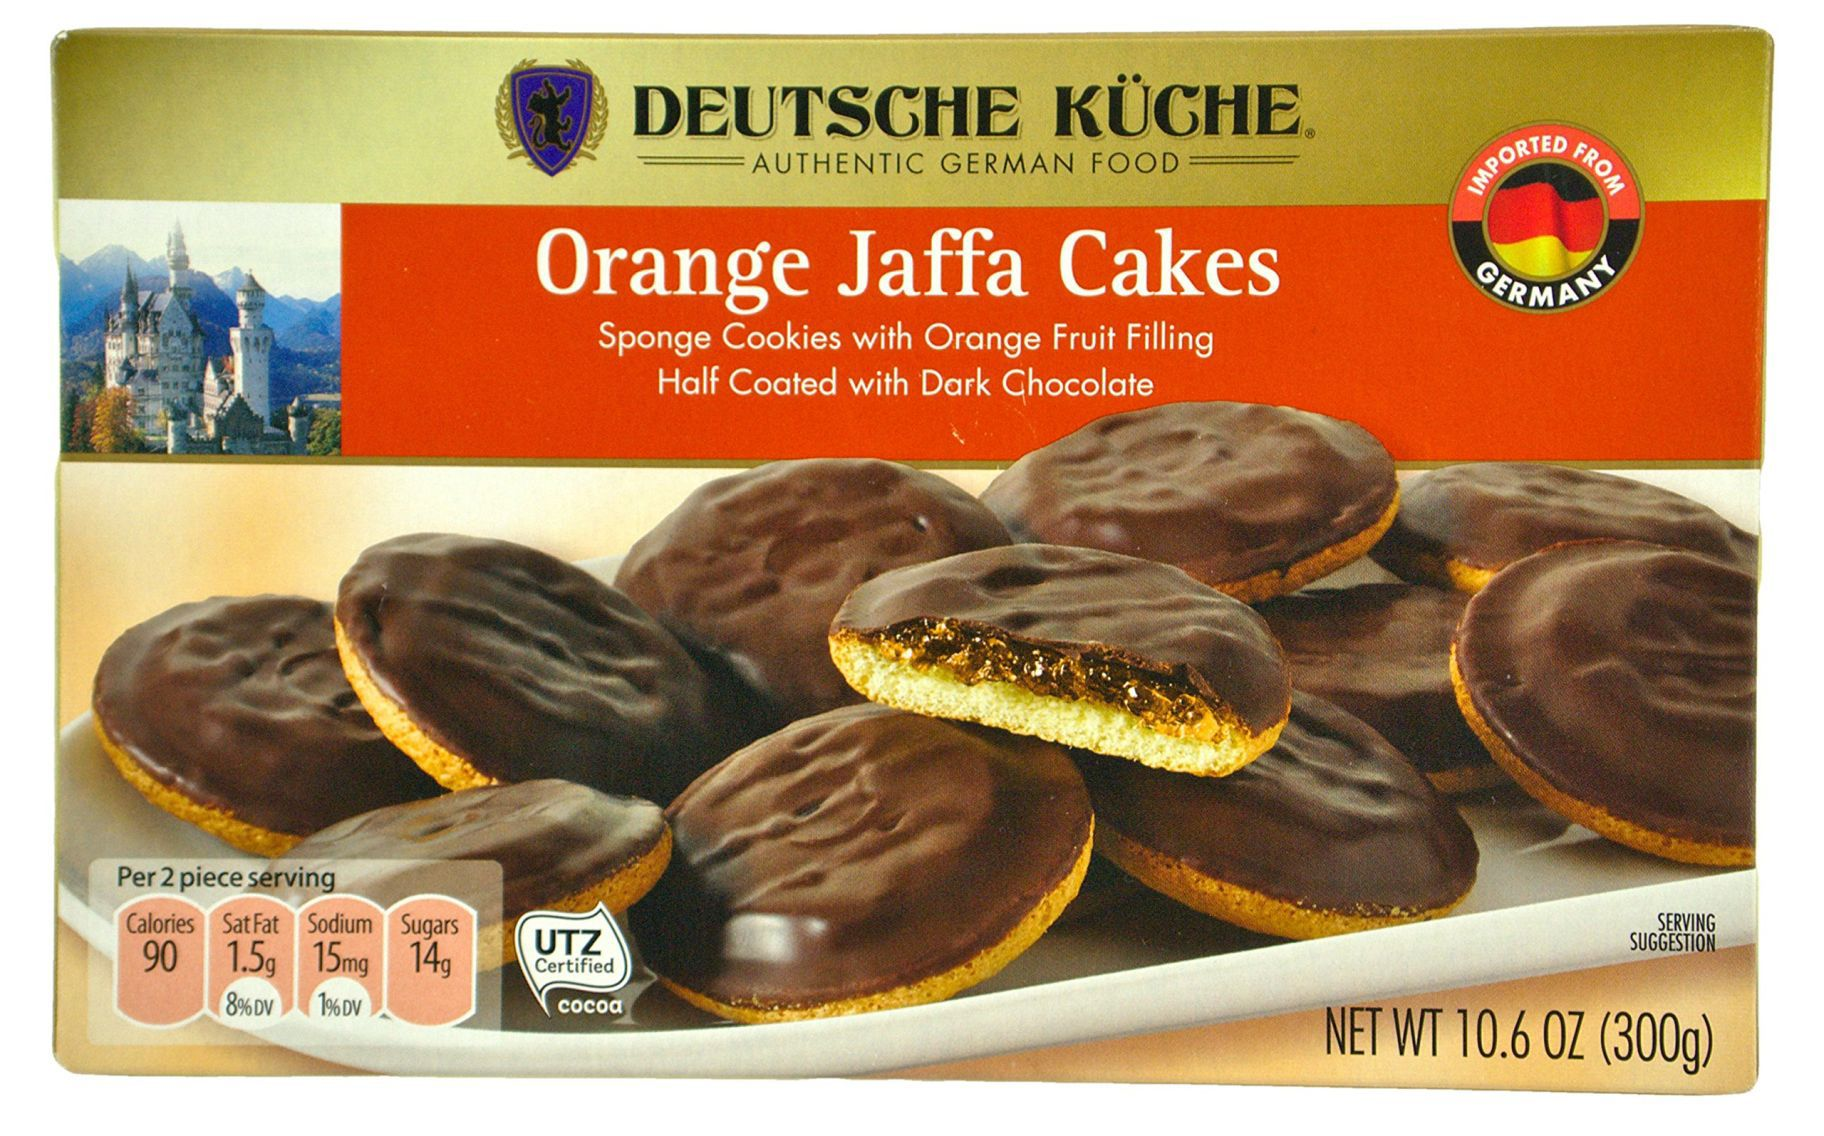 Life Hacks Küche Youtube Best Bite Deutsche Küchen Orange Jaffa Cakes Food And Cooking